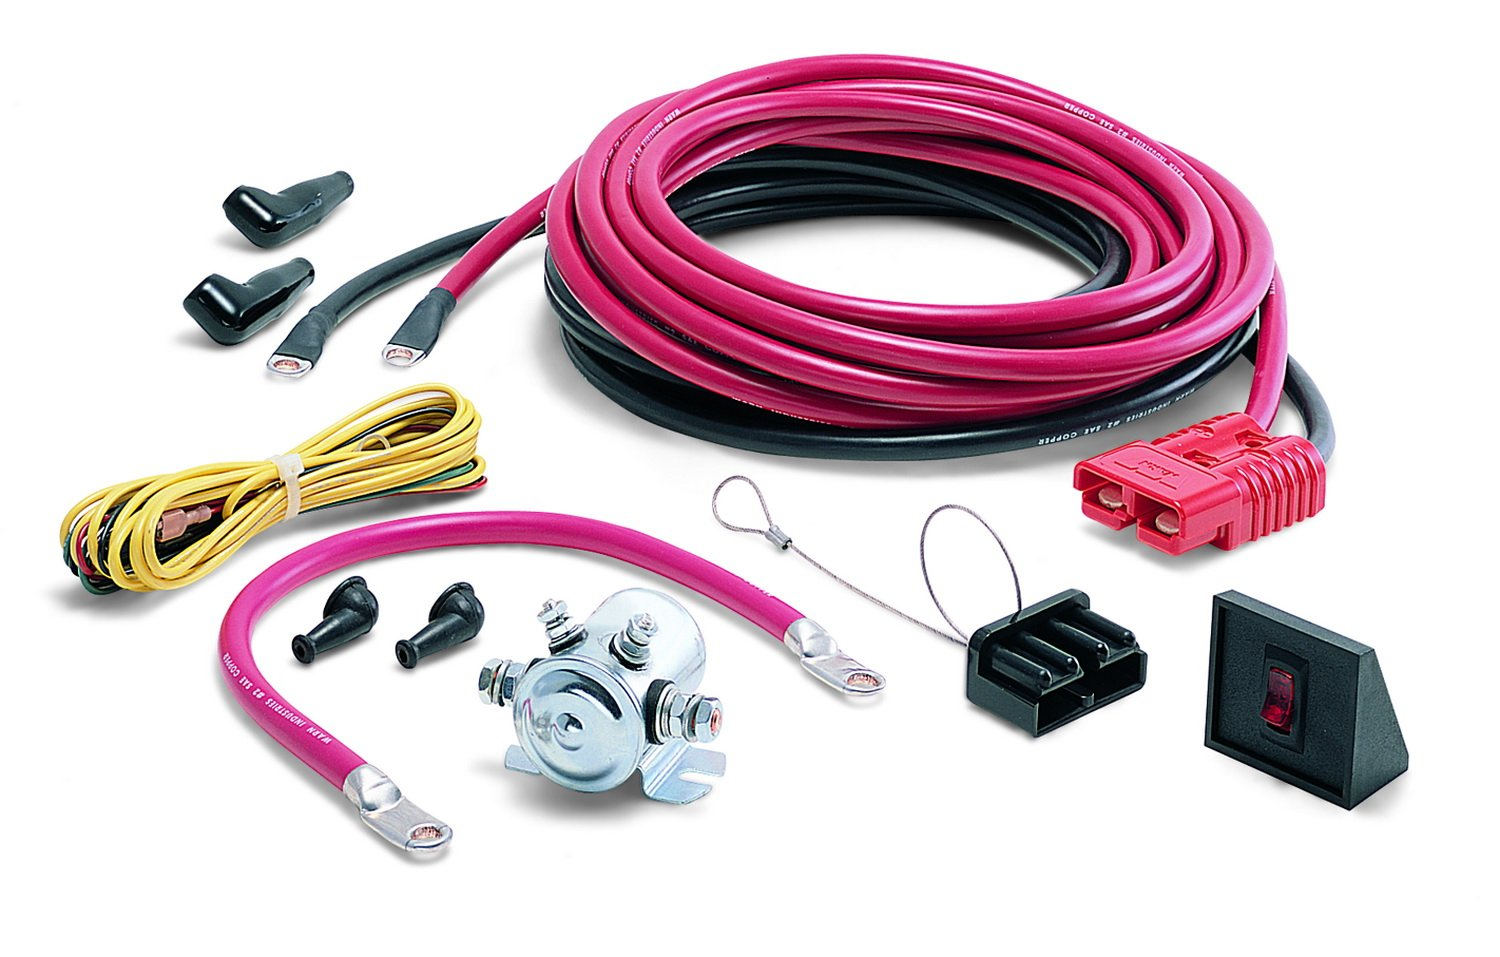 WARN 32966 24' Quick Connect Power Cable by WARN